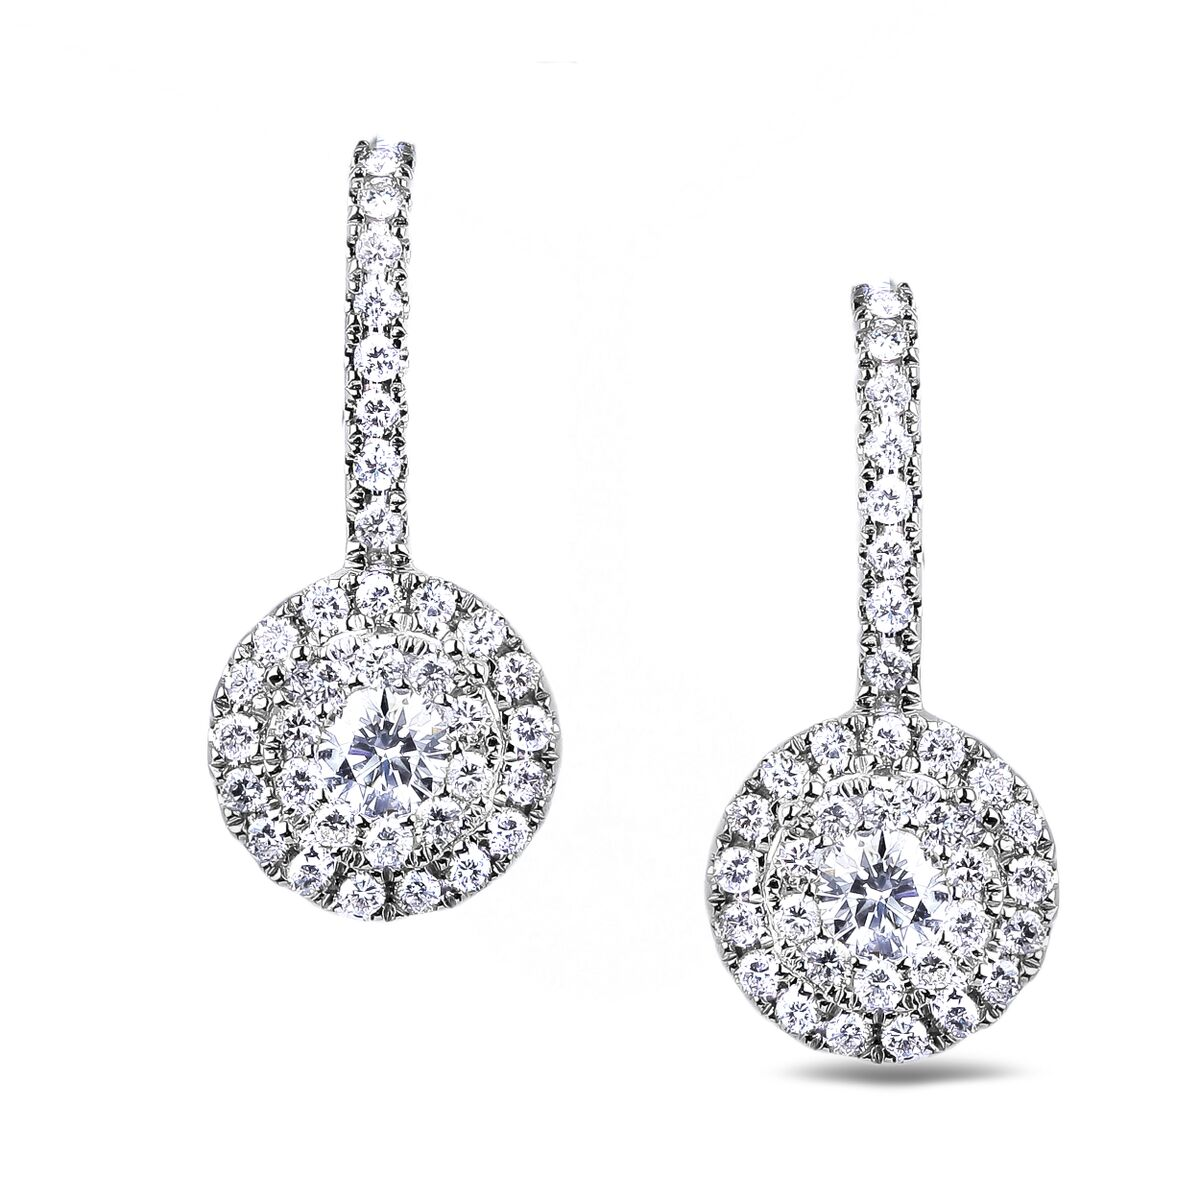 Diamond Dangle Earrings SGE299-2.5 (Earrings)